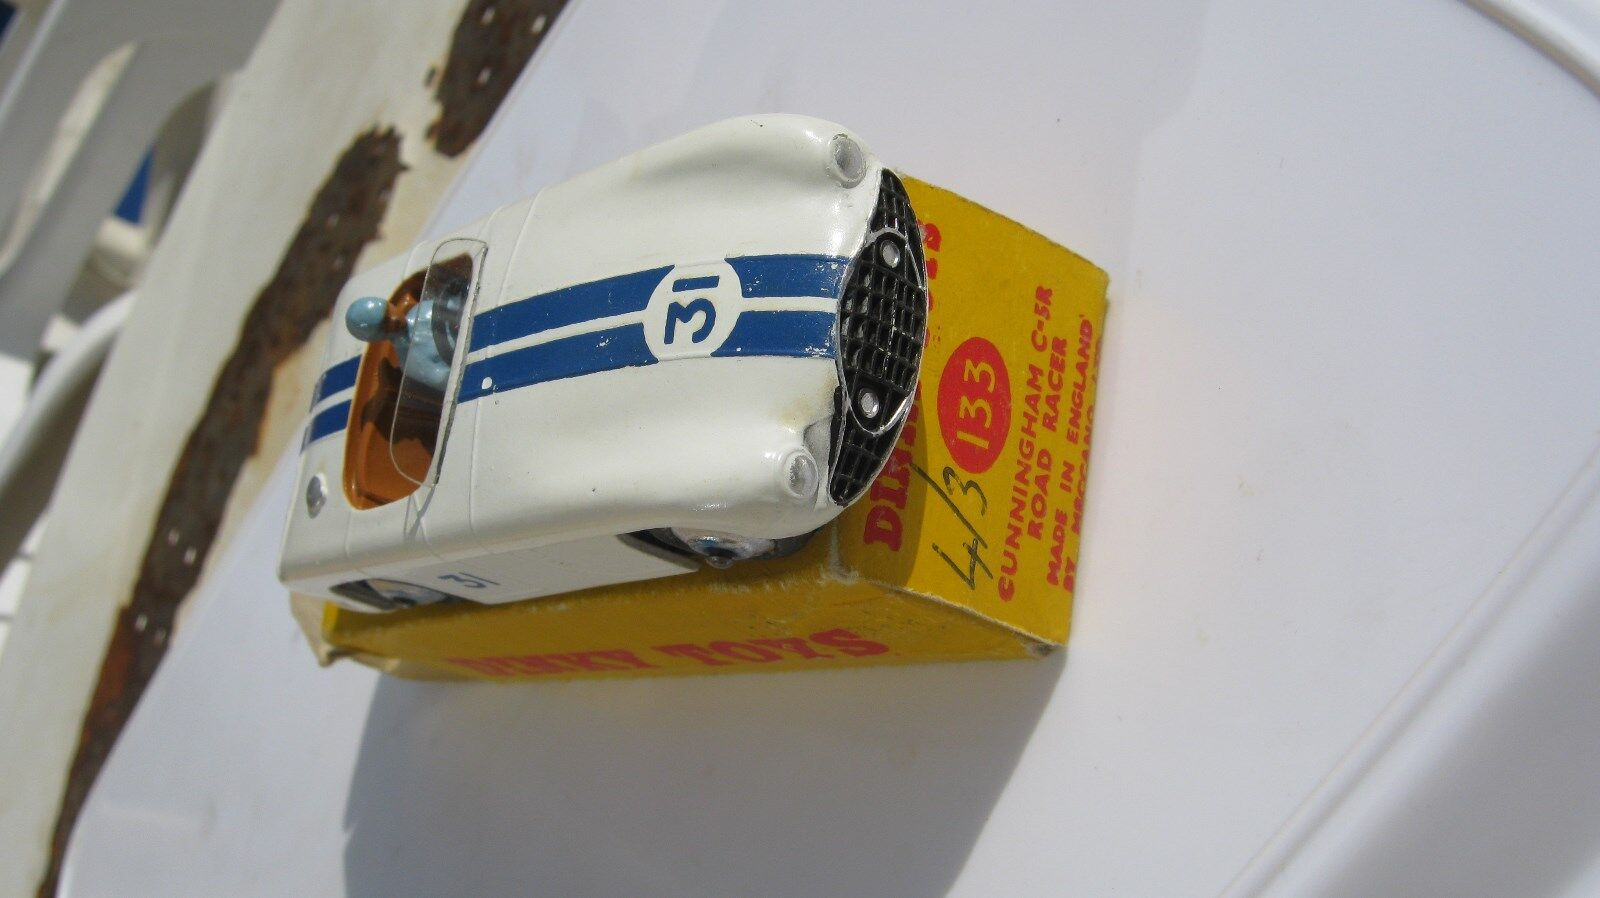 DINKY 133 CUNNINGHAM C-5R ROAD RACER ORIGINAL GOOD CAR IN GOOD ORIGINAL BOX